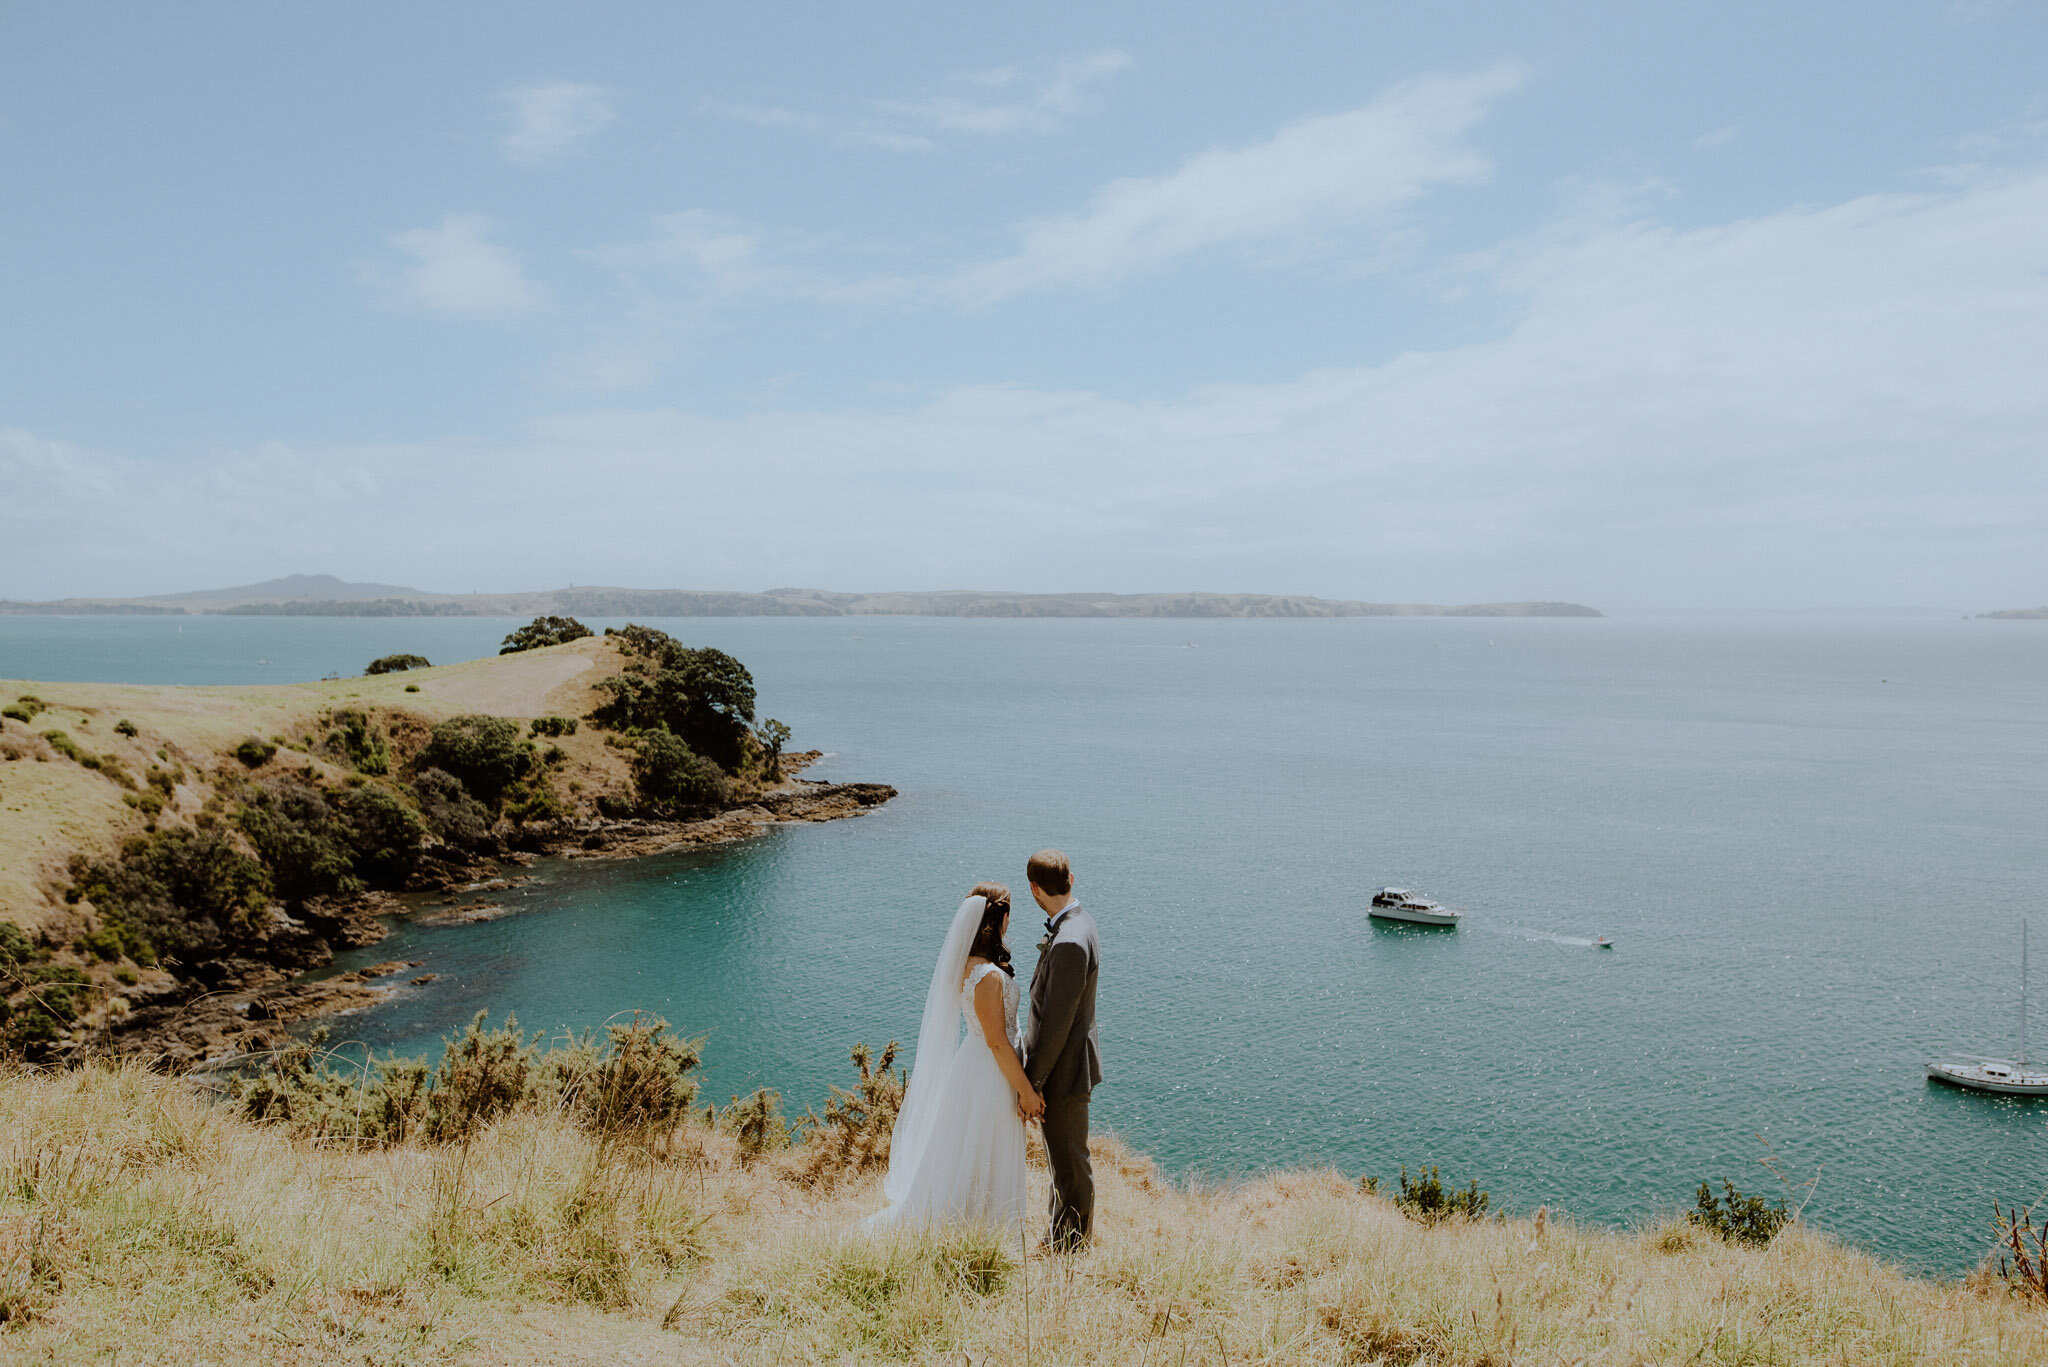 Wedding photos clifftop spot with view of ocean